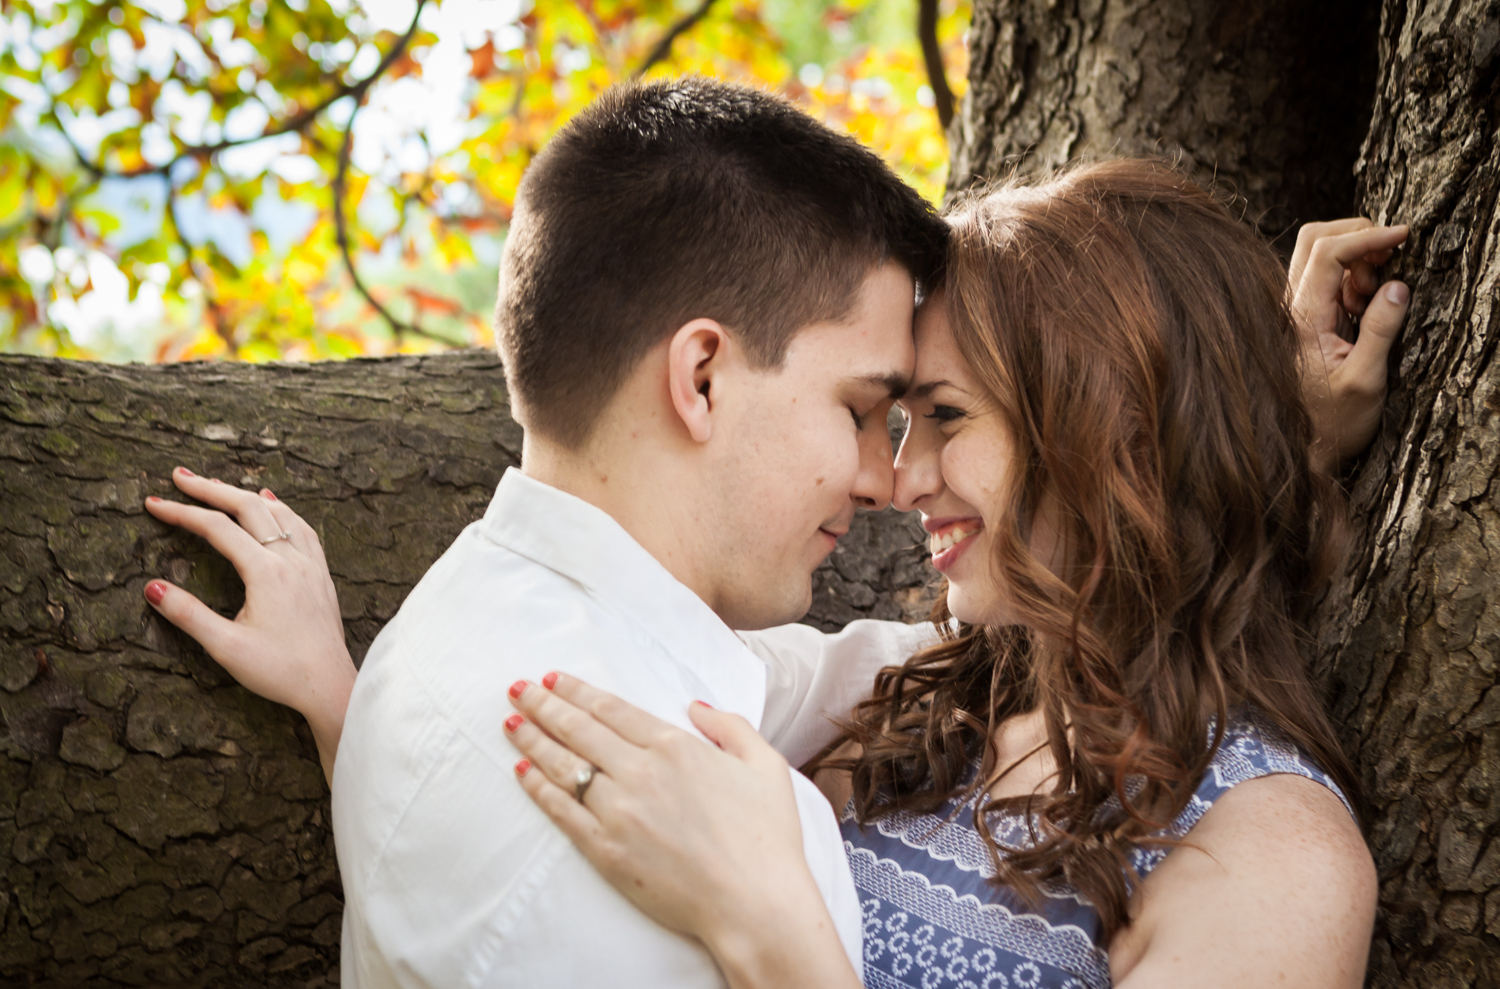 Couple touching foreheads next to tree